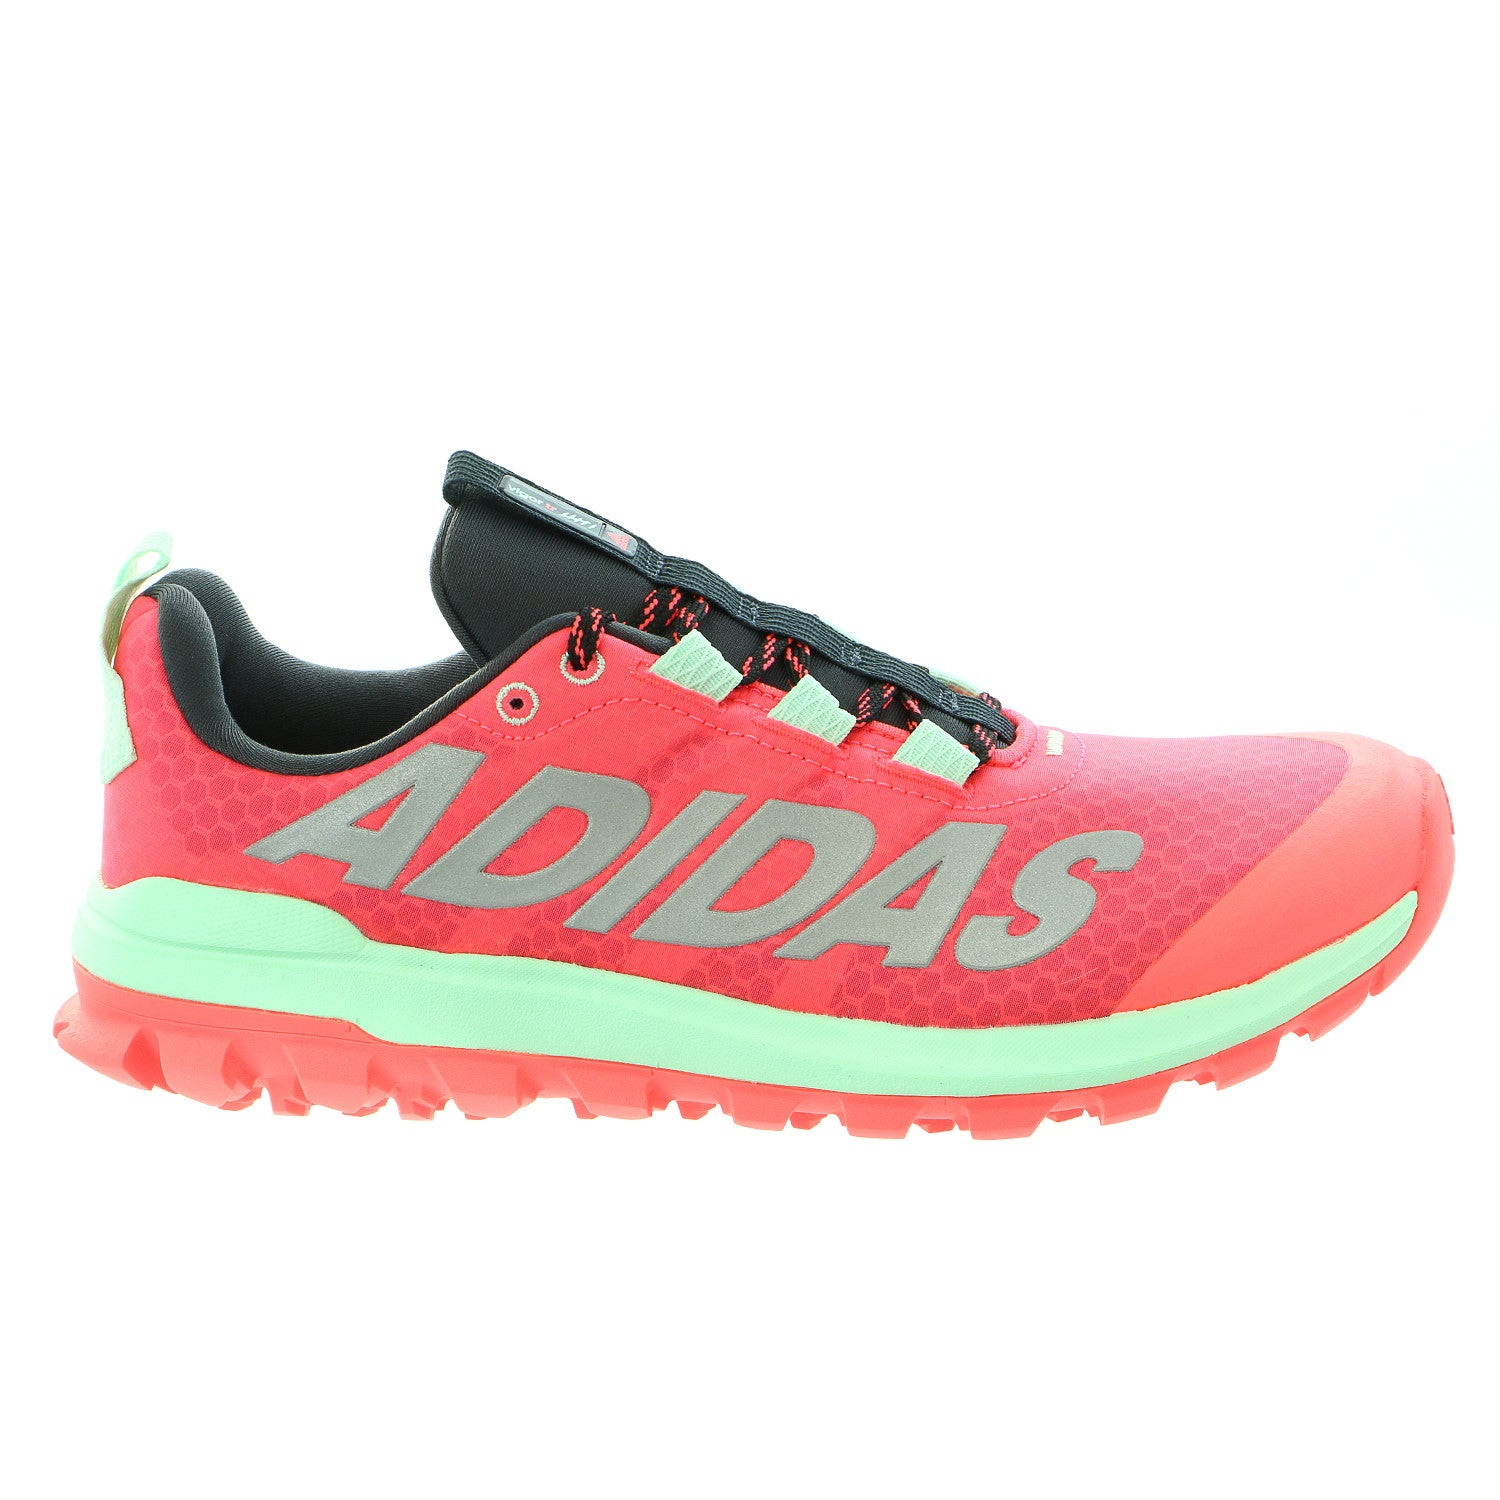 014fc74d2 Adidas Vigor 6 TR W Trail Running Sneaker Shoe - Frozen Yellow Silver Green  - Womens